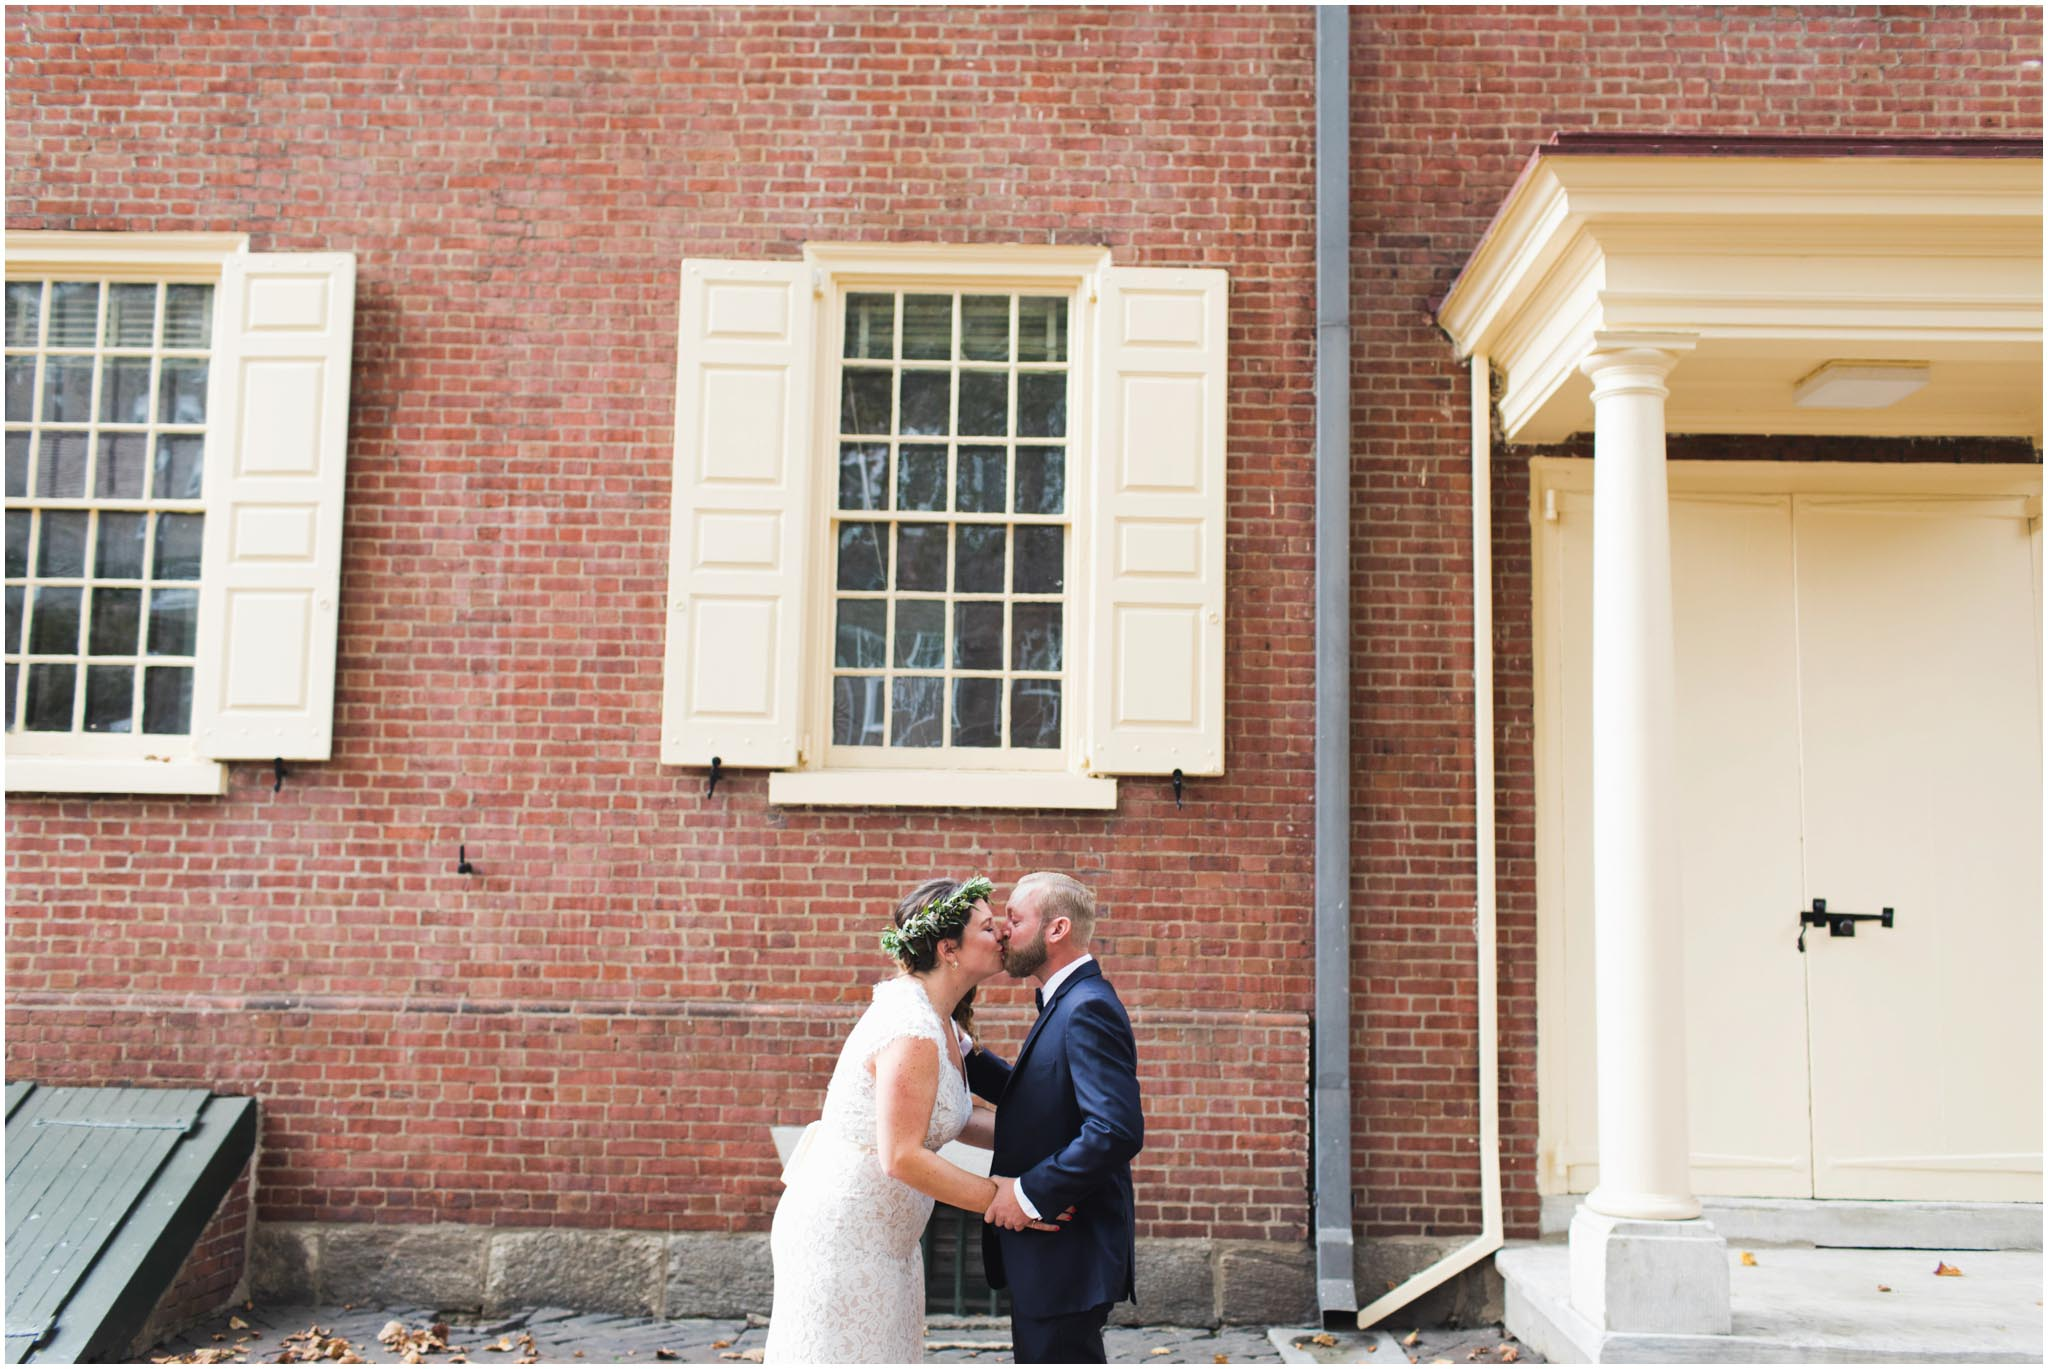 Arch Street Meeting House, wedding, photography